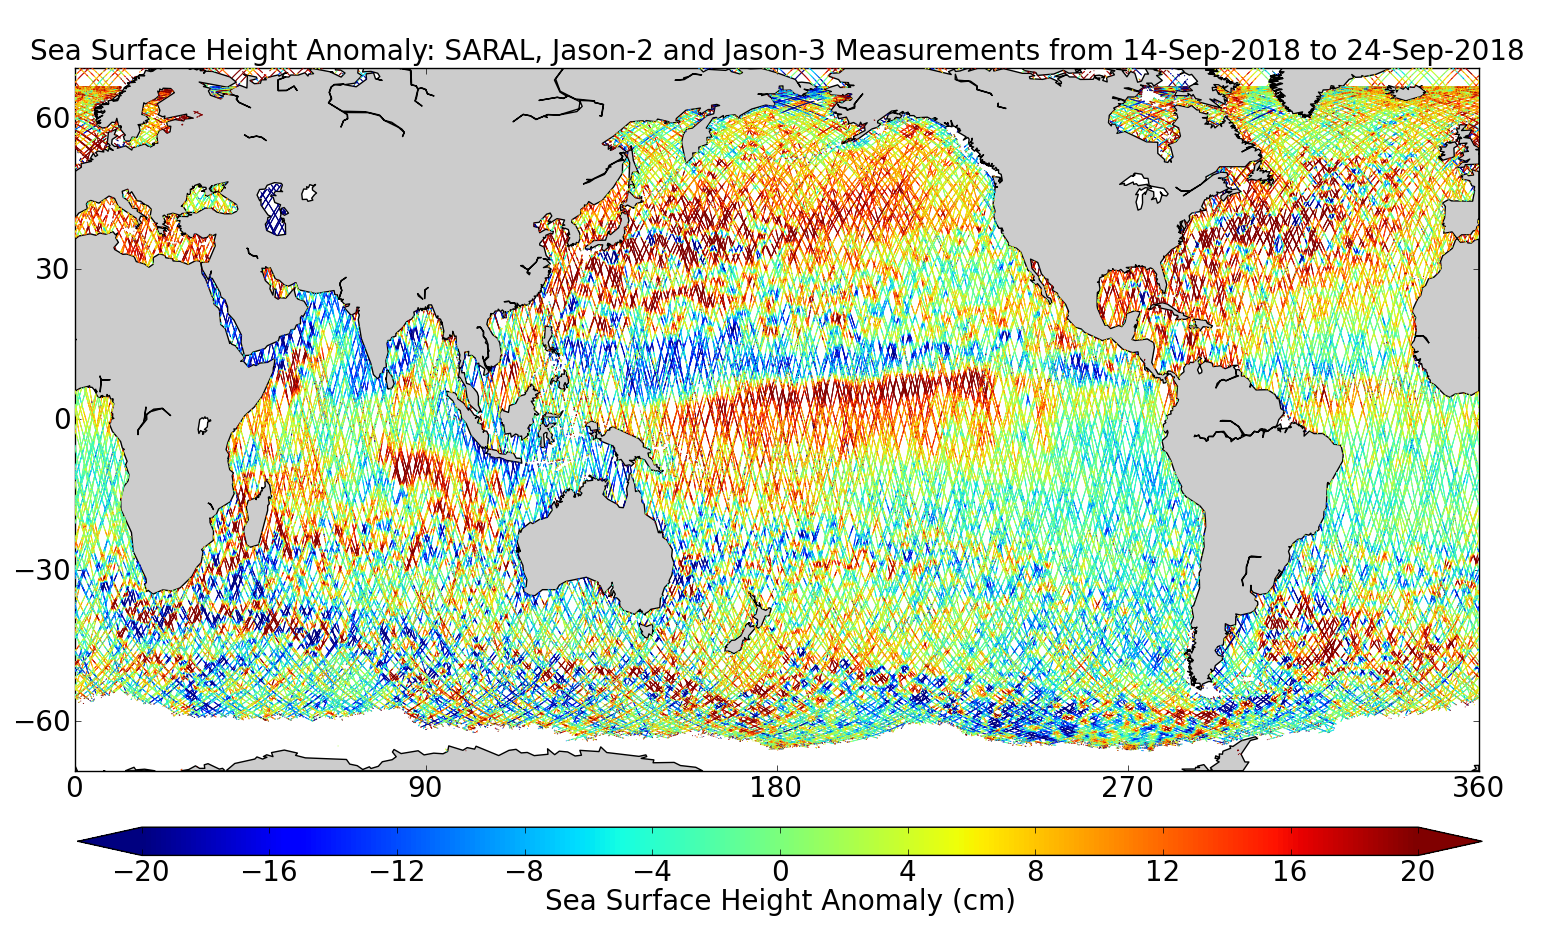 Sea Surface Height Anomaly: SARAL, Jason-2 and Jason-3 Measurements from 14-Sep-2018 to 24-Sep-2018